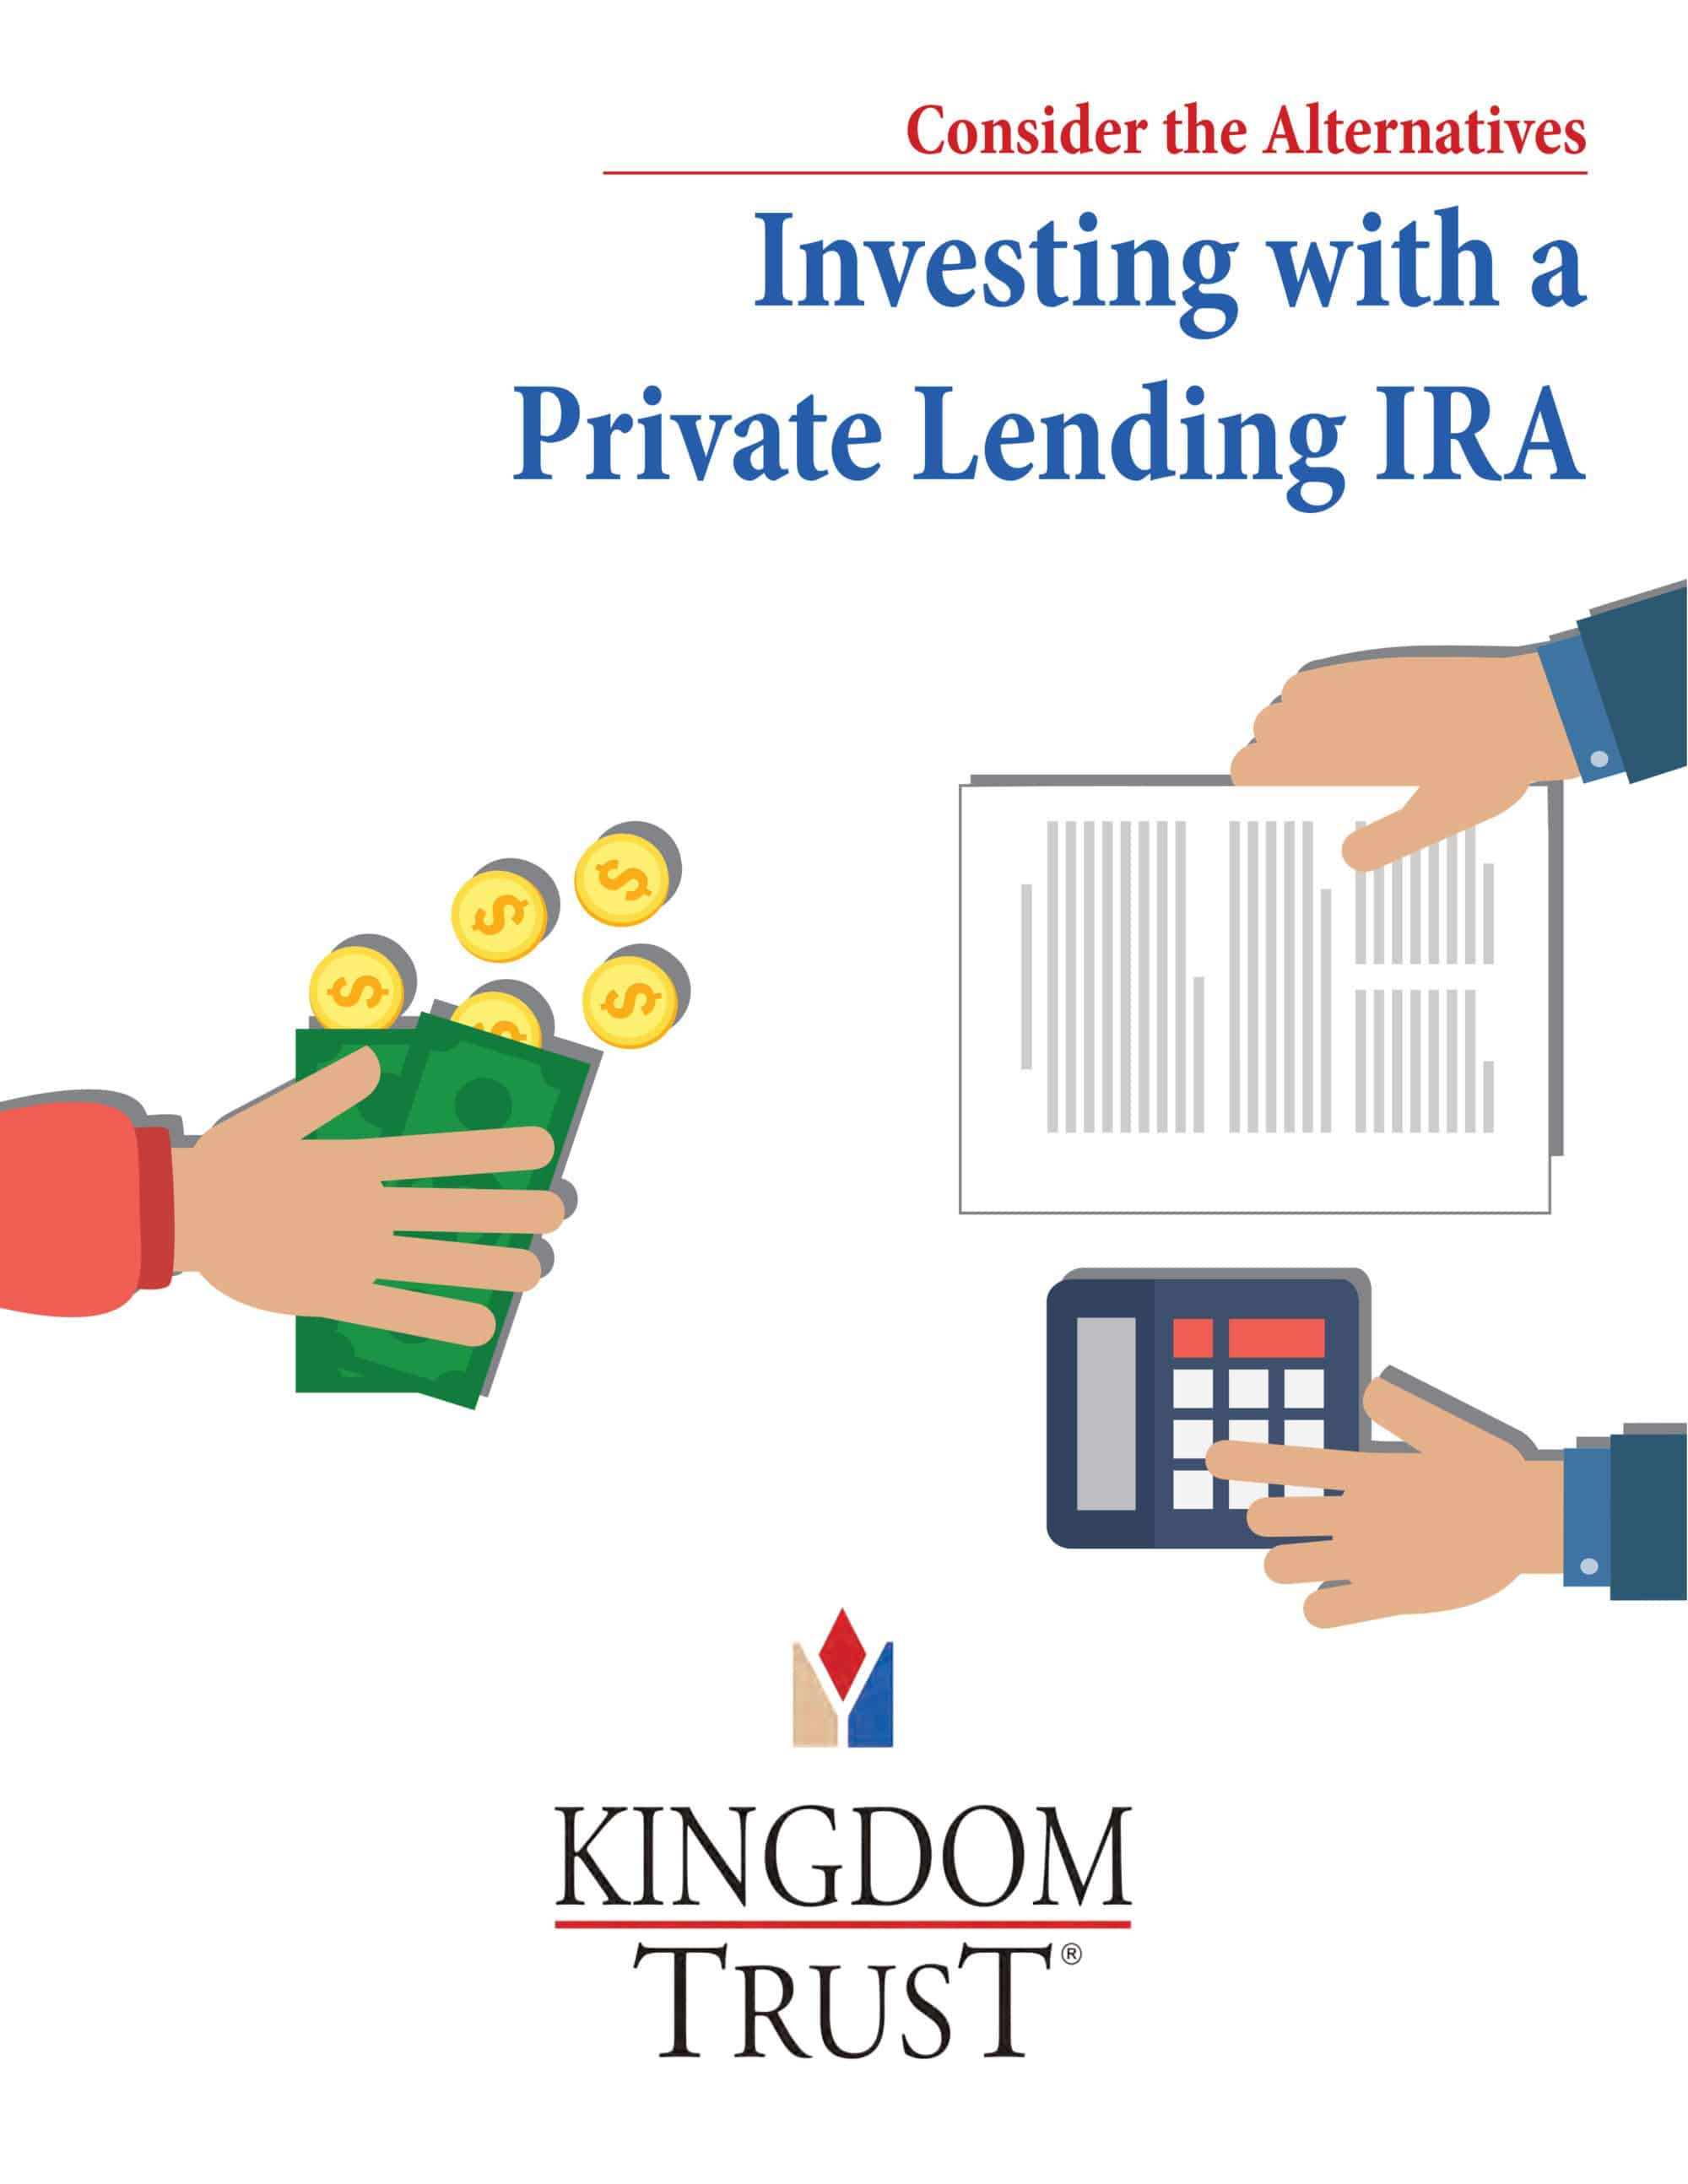 Investing with a Private Lending IRA